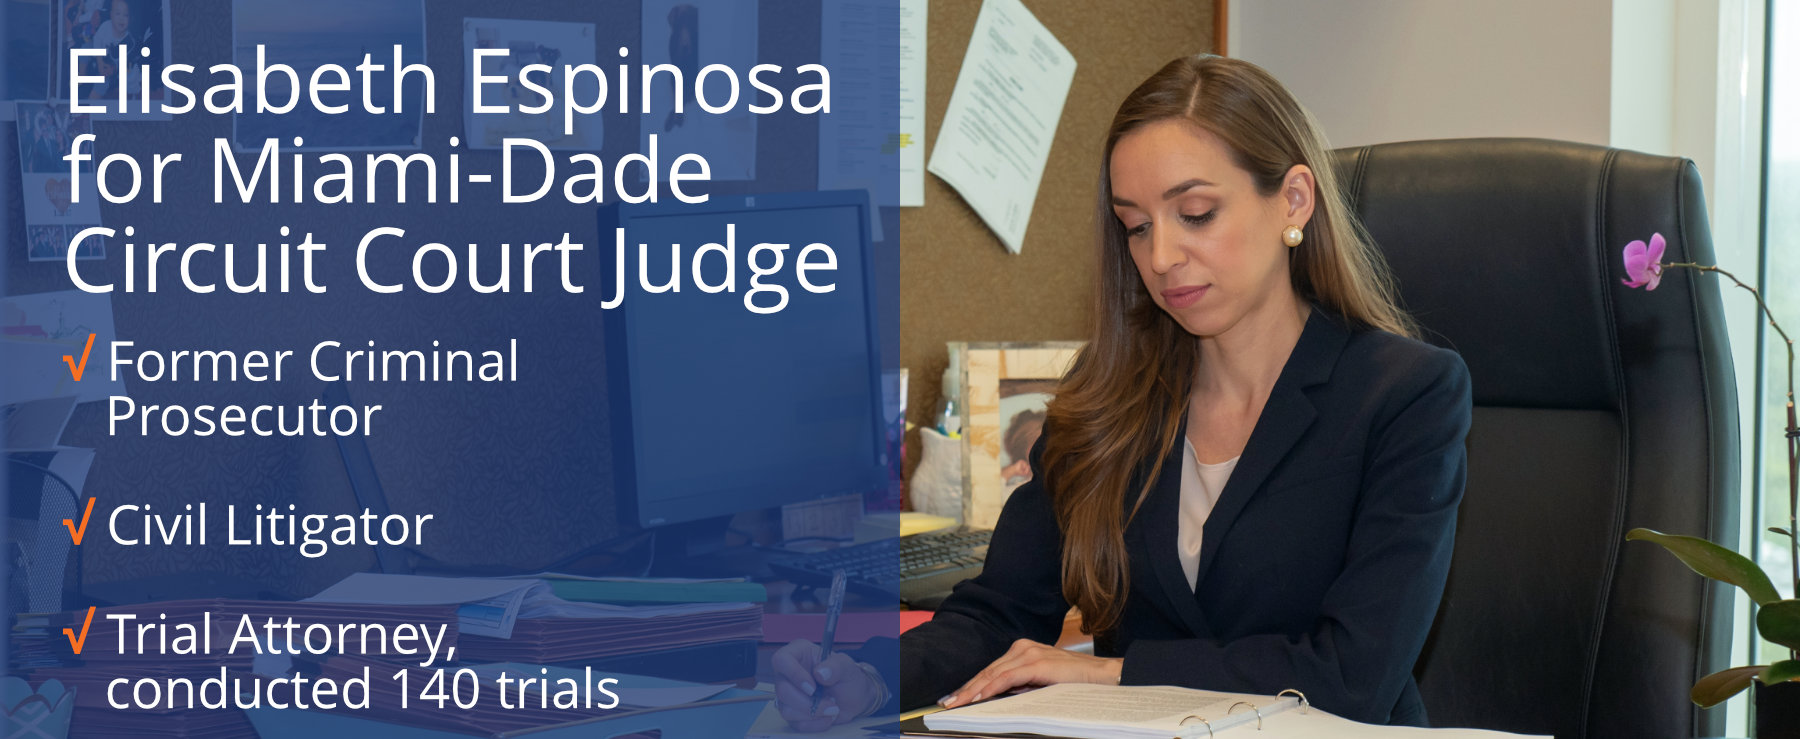 Elisabeth Espinosa Judge